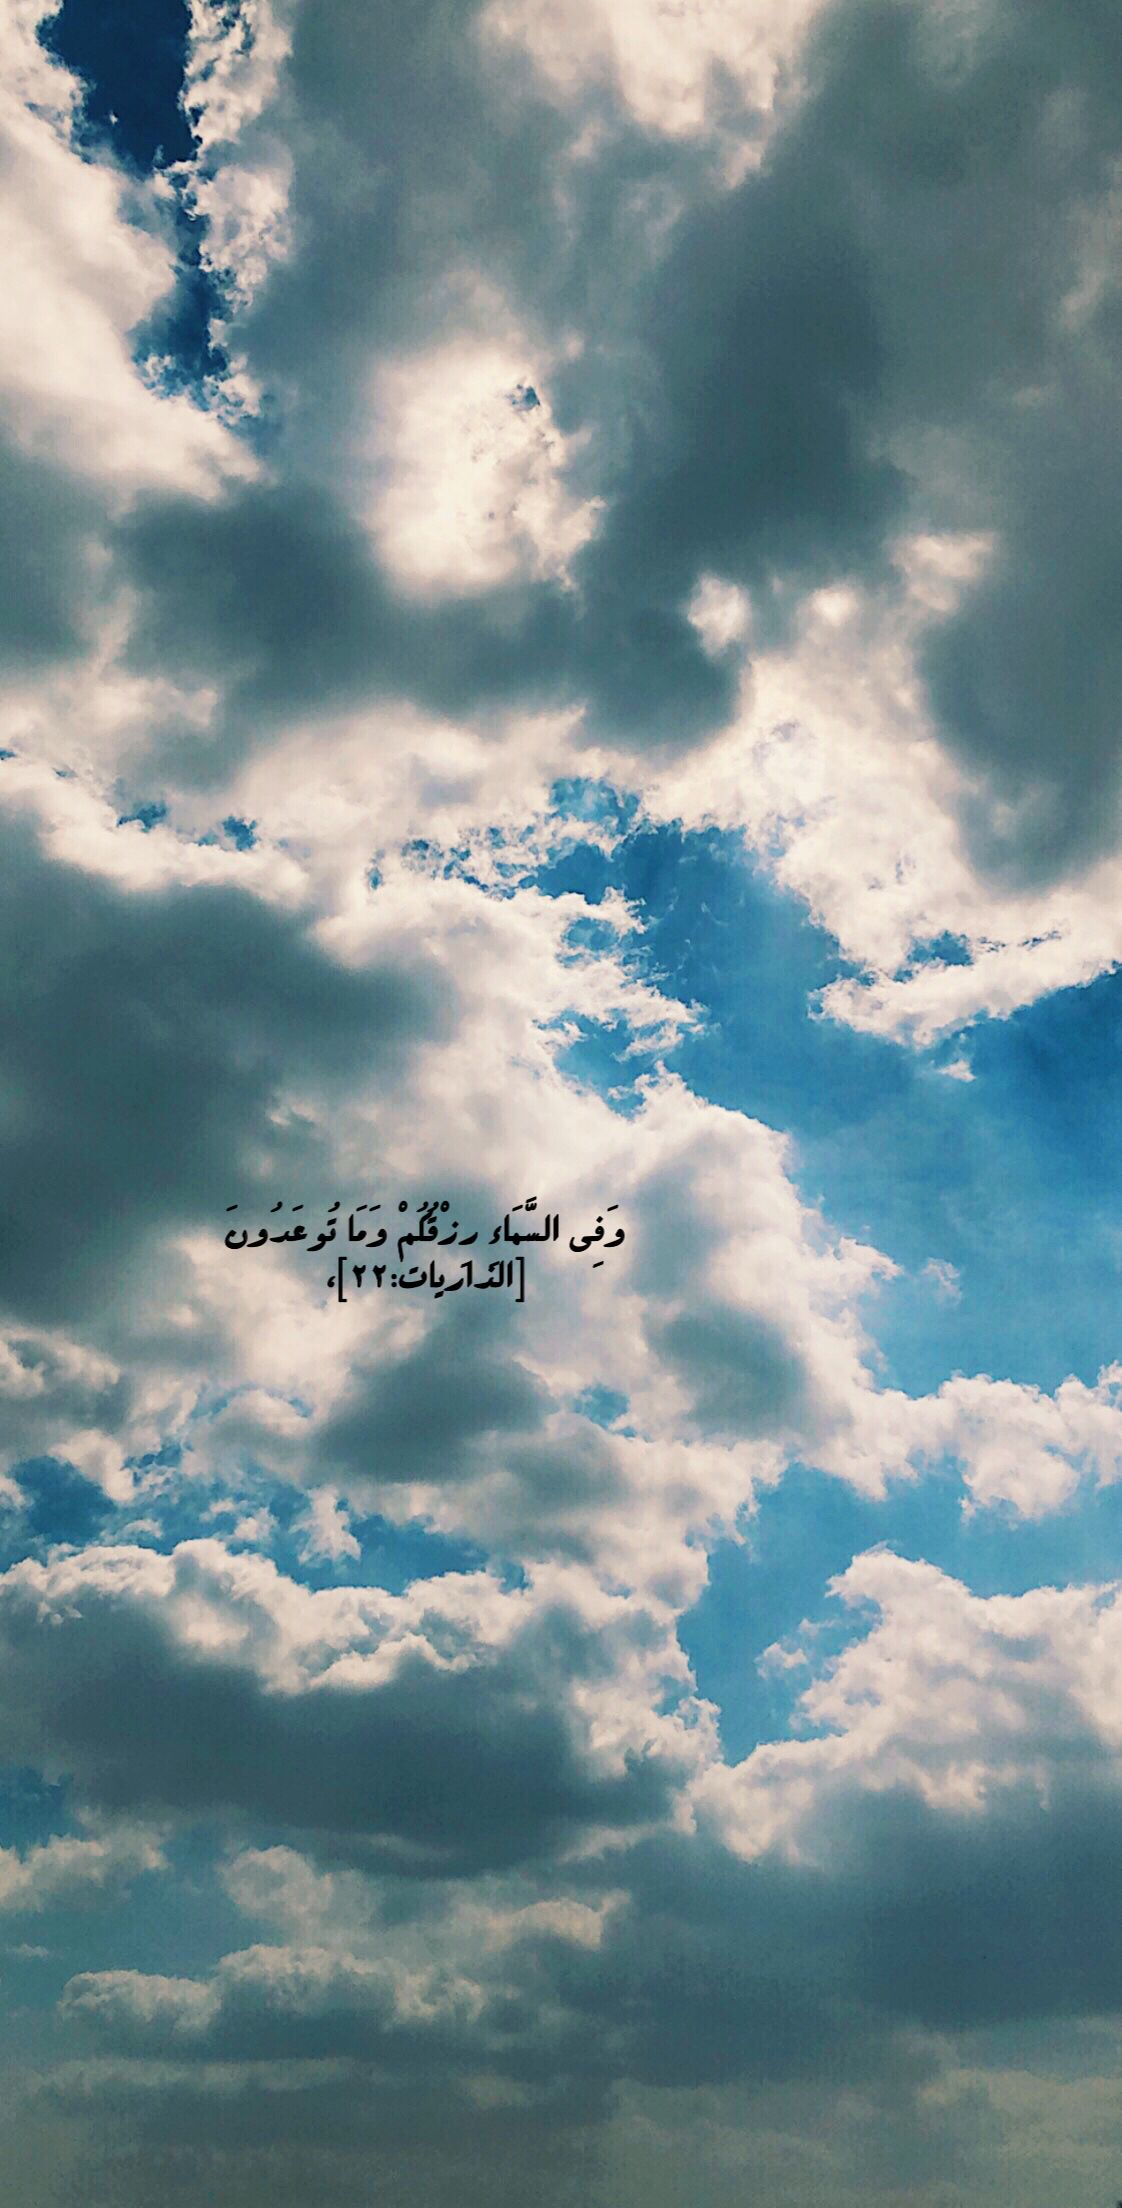 دعاء صور تصميم تصويري رمزيات عربي قهوة Goodvibes Photography I Iphone Wallpaper Quotes Love Quran Quotes Inspirational Quotes For Book Lovers